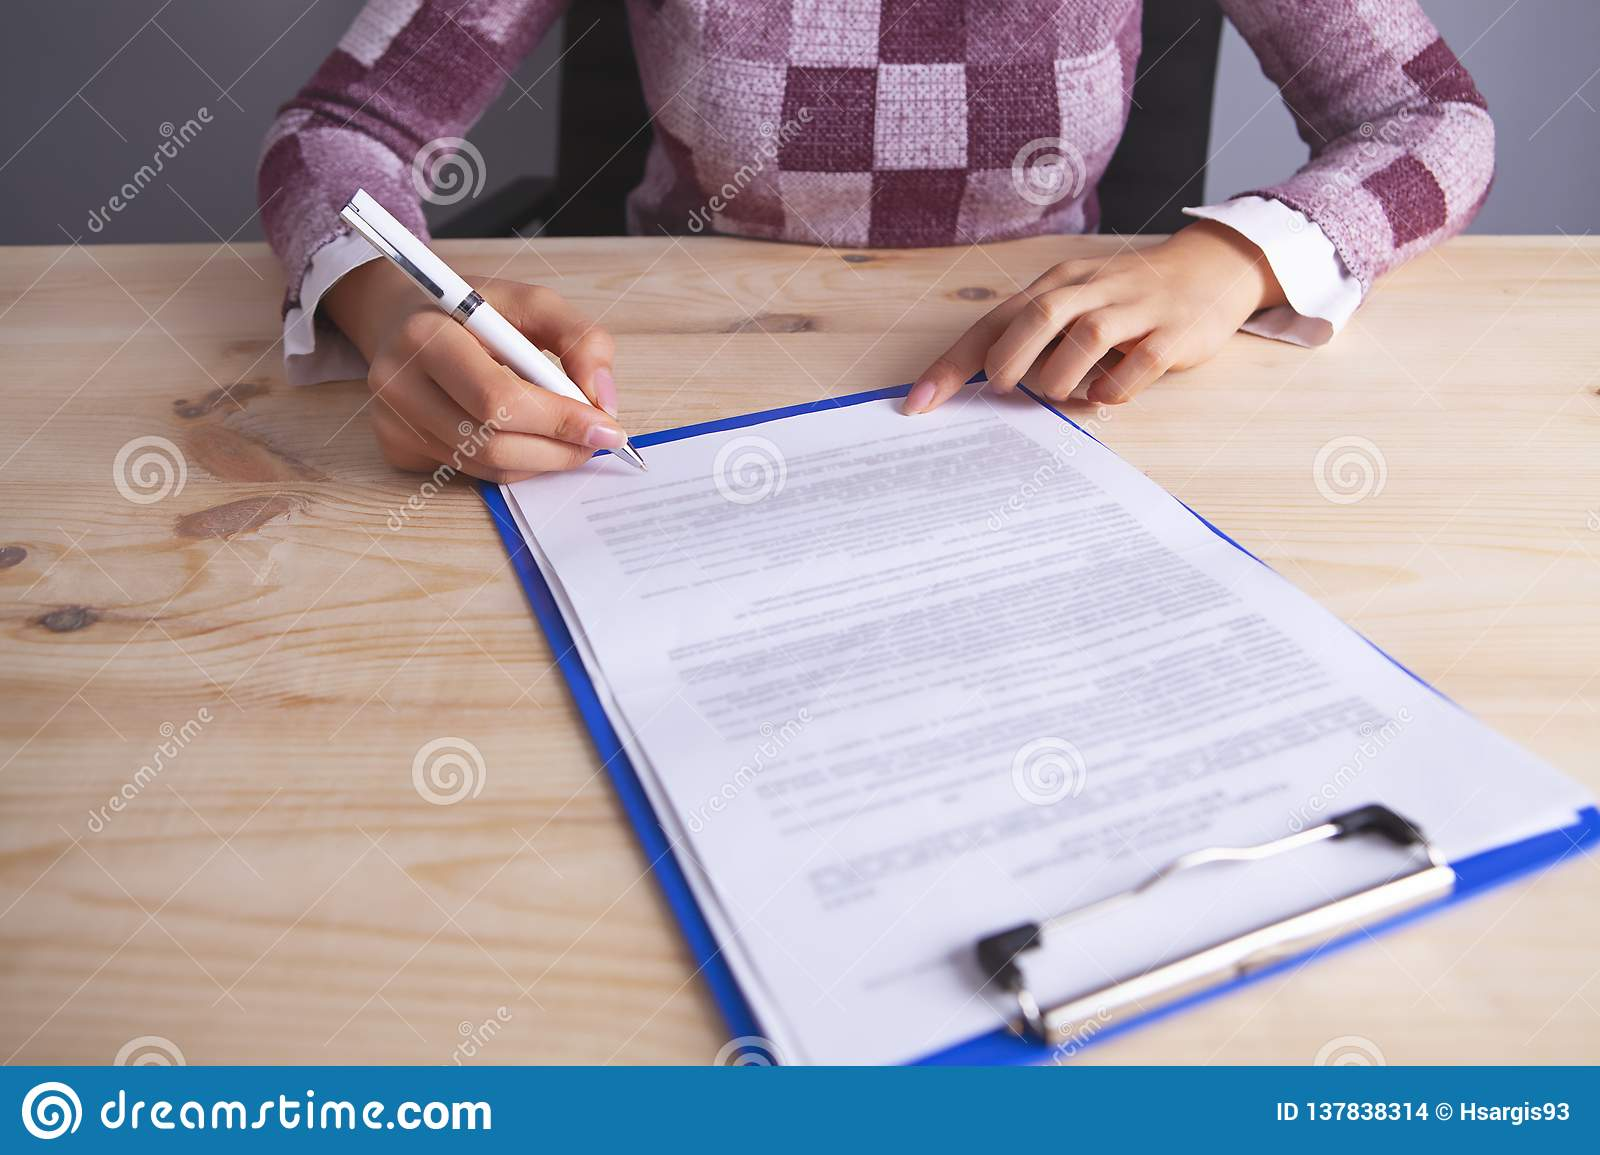 Businesswoman documents to sign